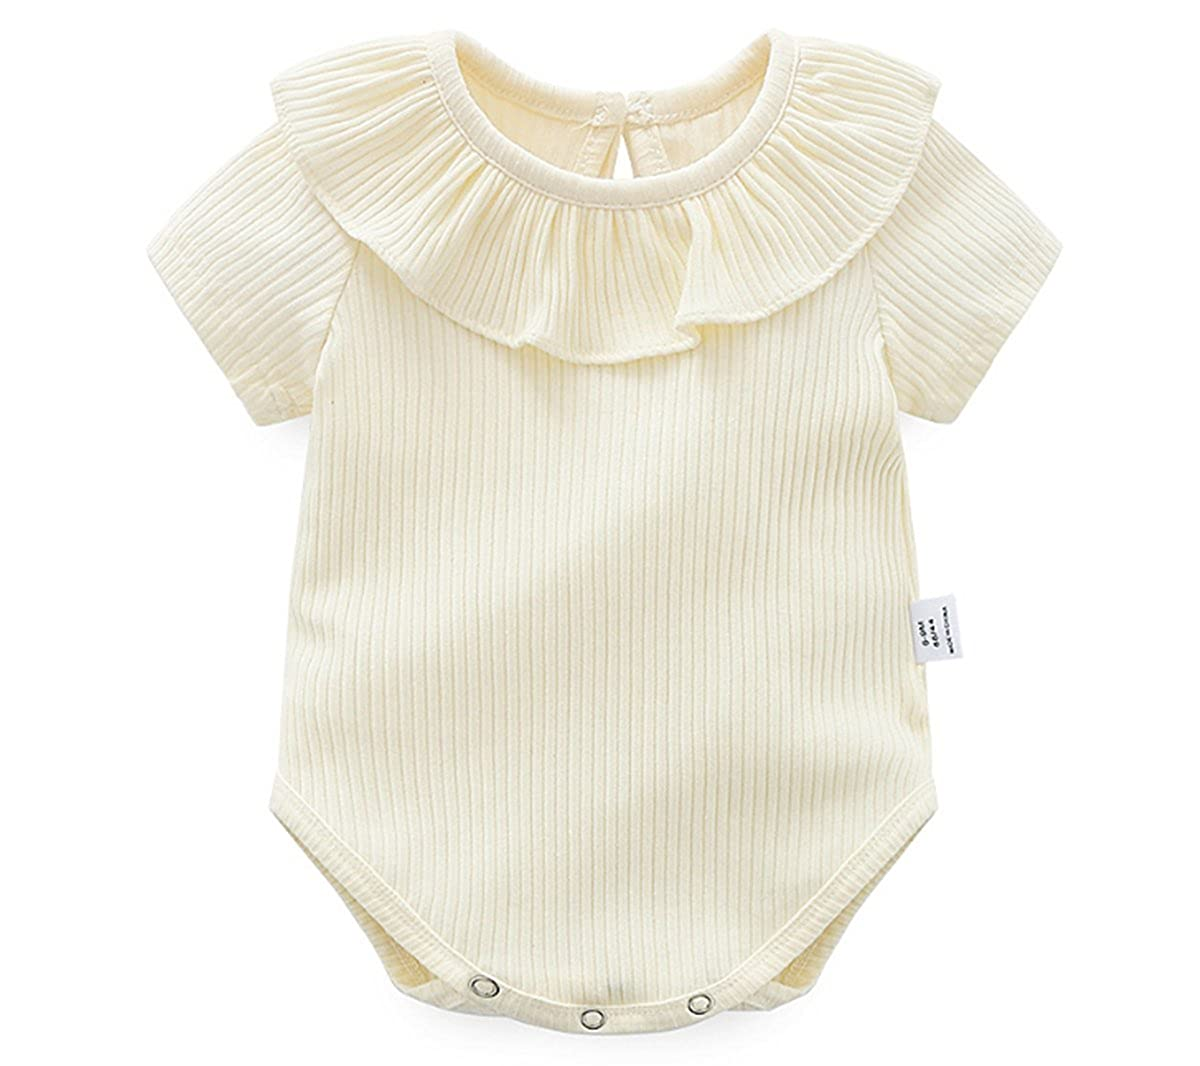 Ding-dong Baby Girl Summer Princess Ruffle Solide Romper